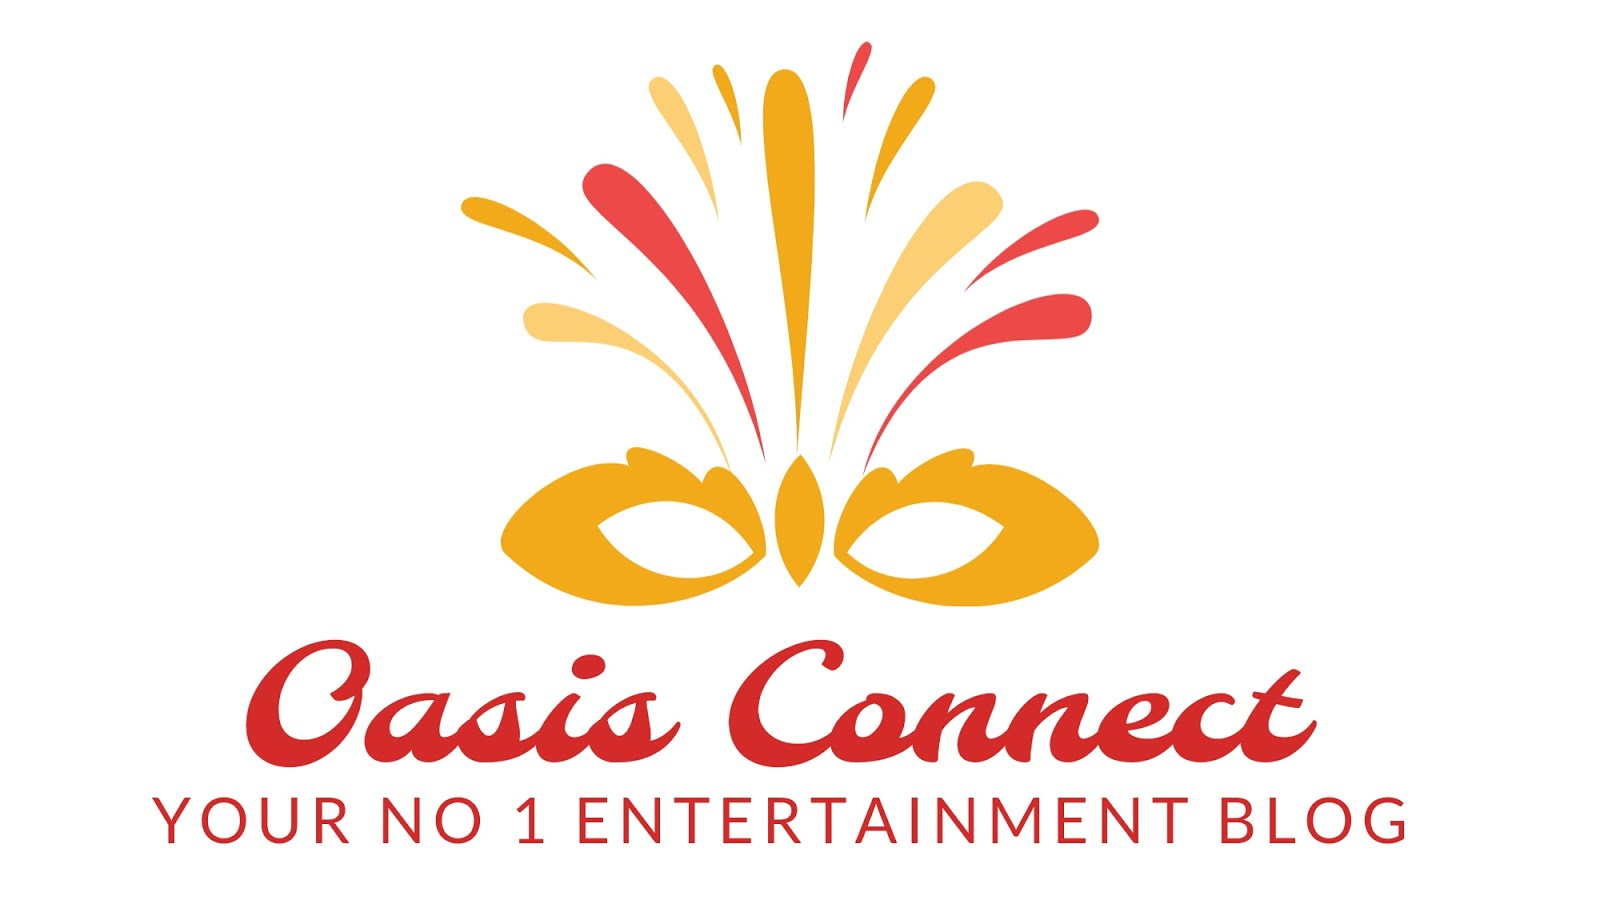 Oasis Connect || No 1 Entertainment Blog